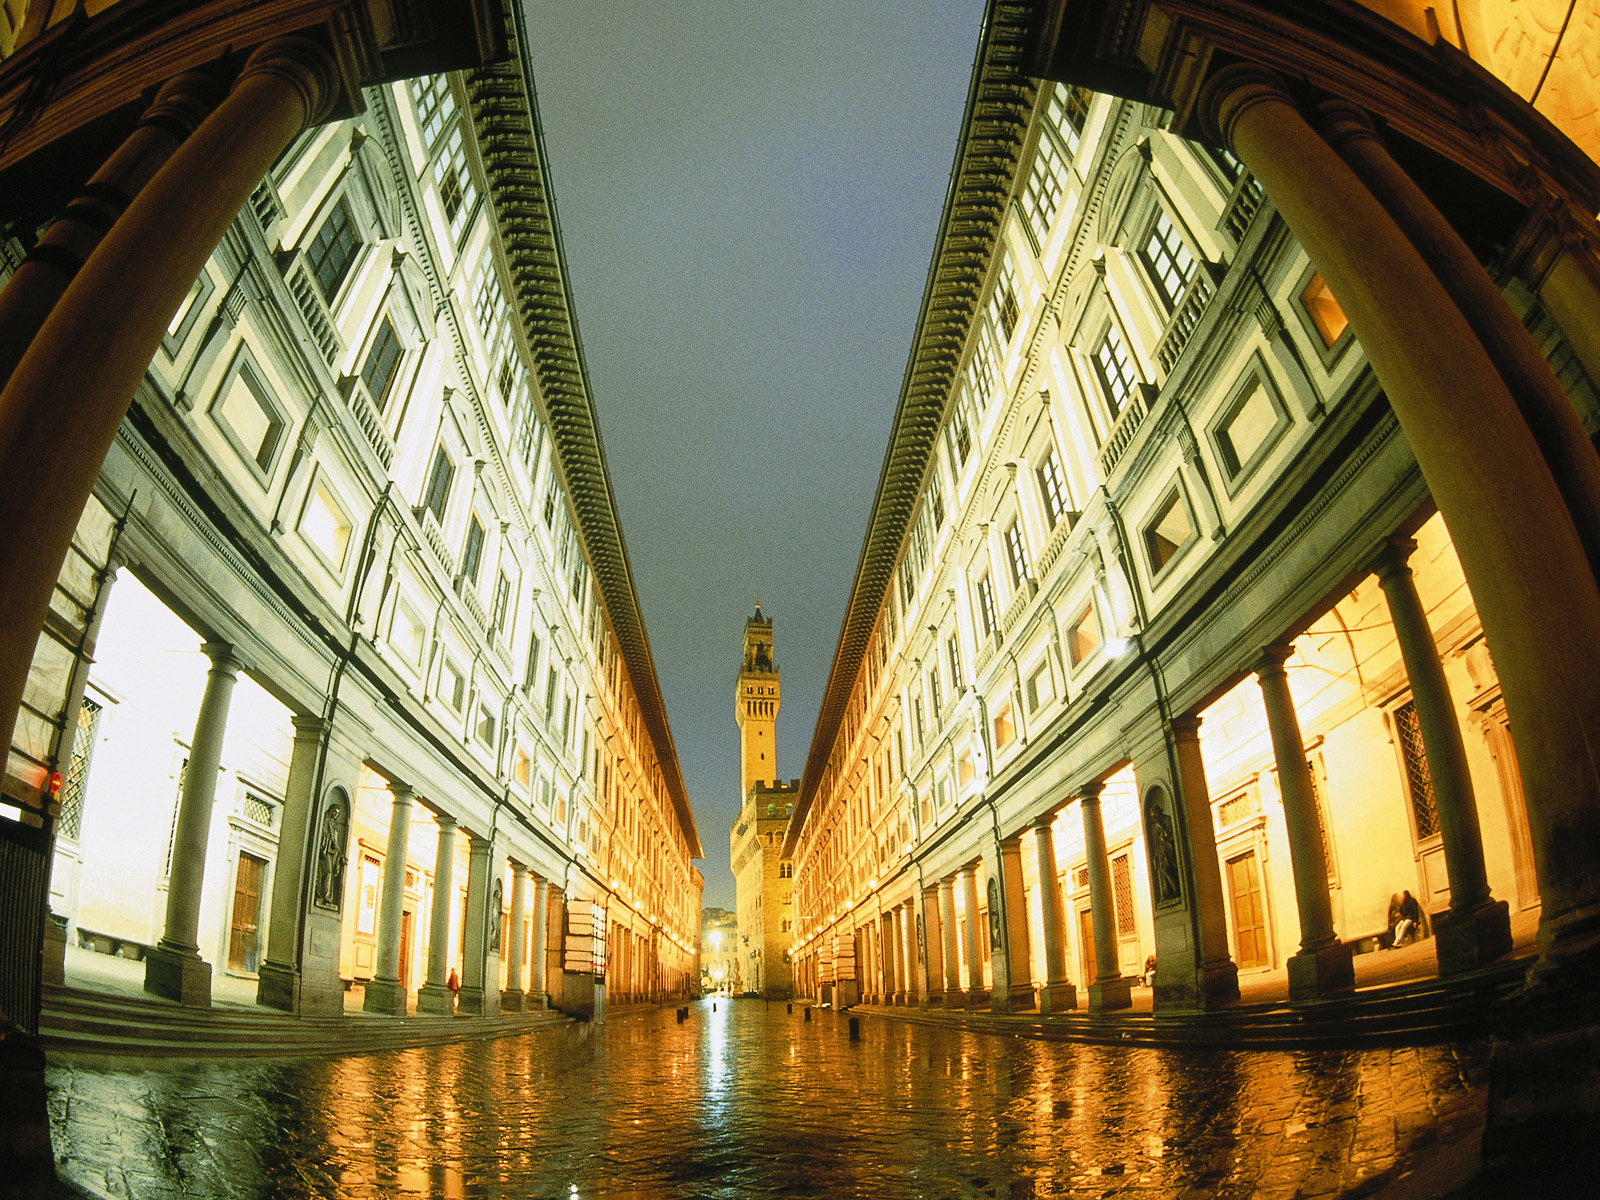 The Uffizi in Florence at night, in the background Palazzo Vecchio --- Image by © Wilfried Krecichwost/Corbis